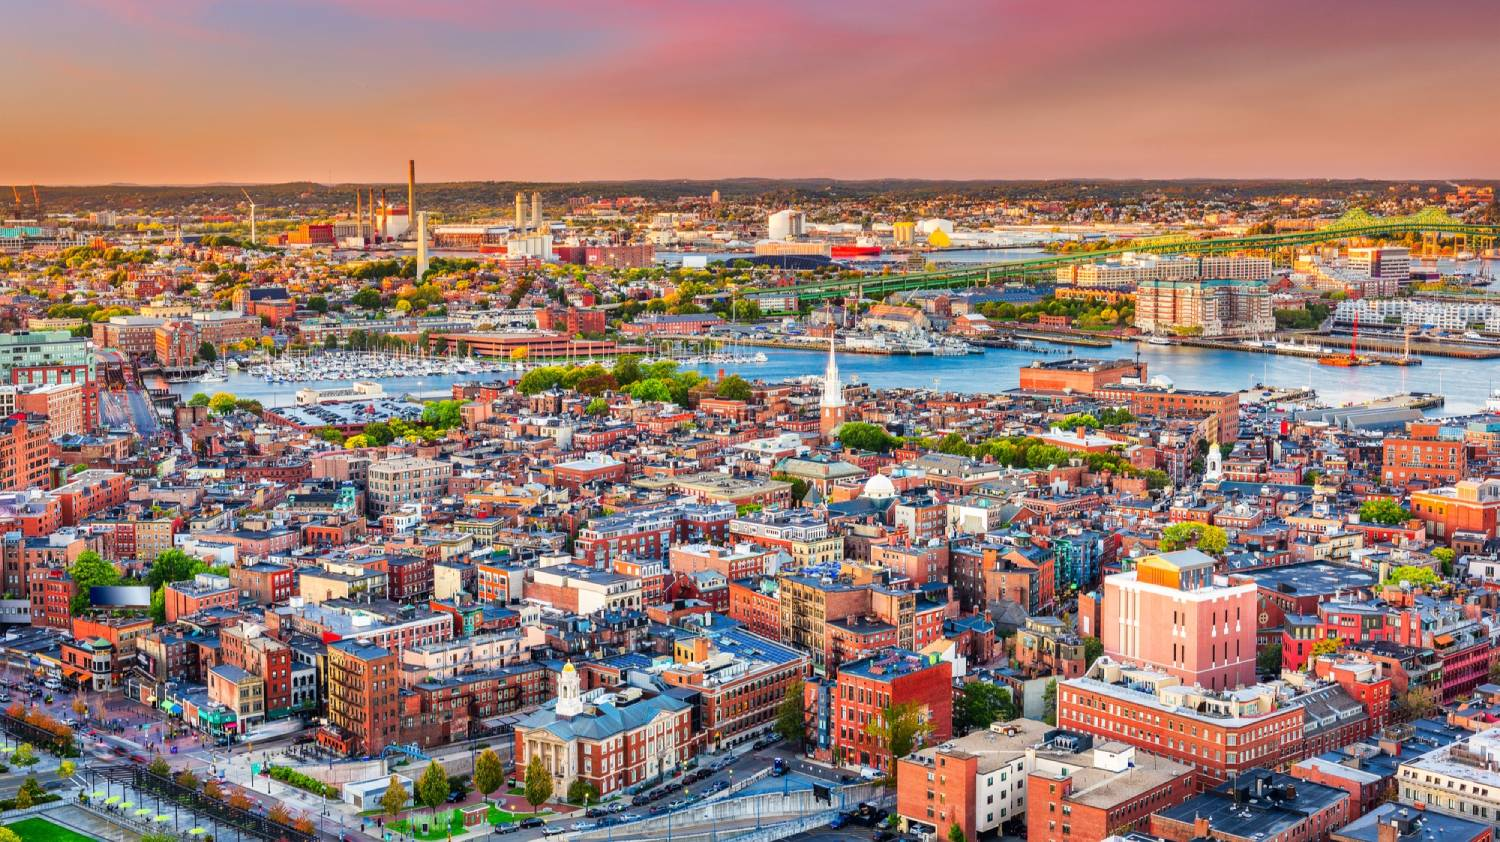 North End - Things To Do In Boston